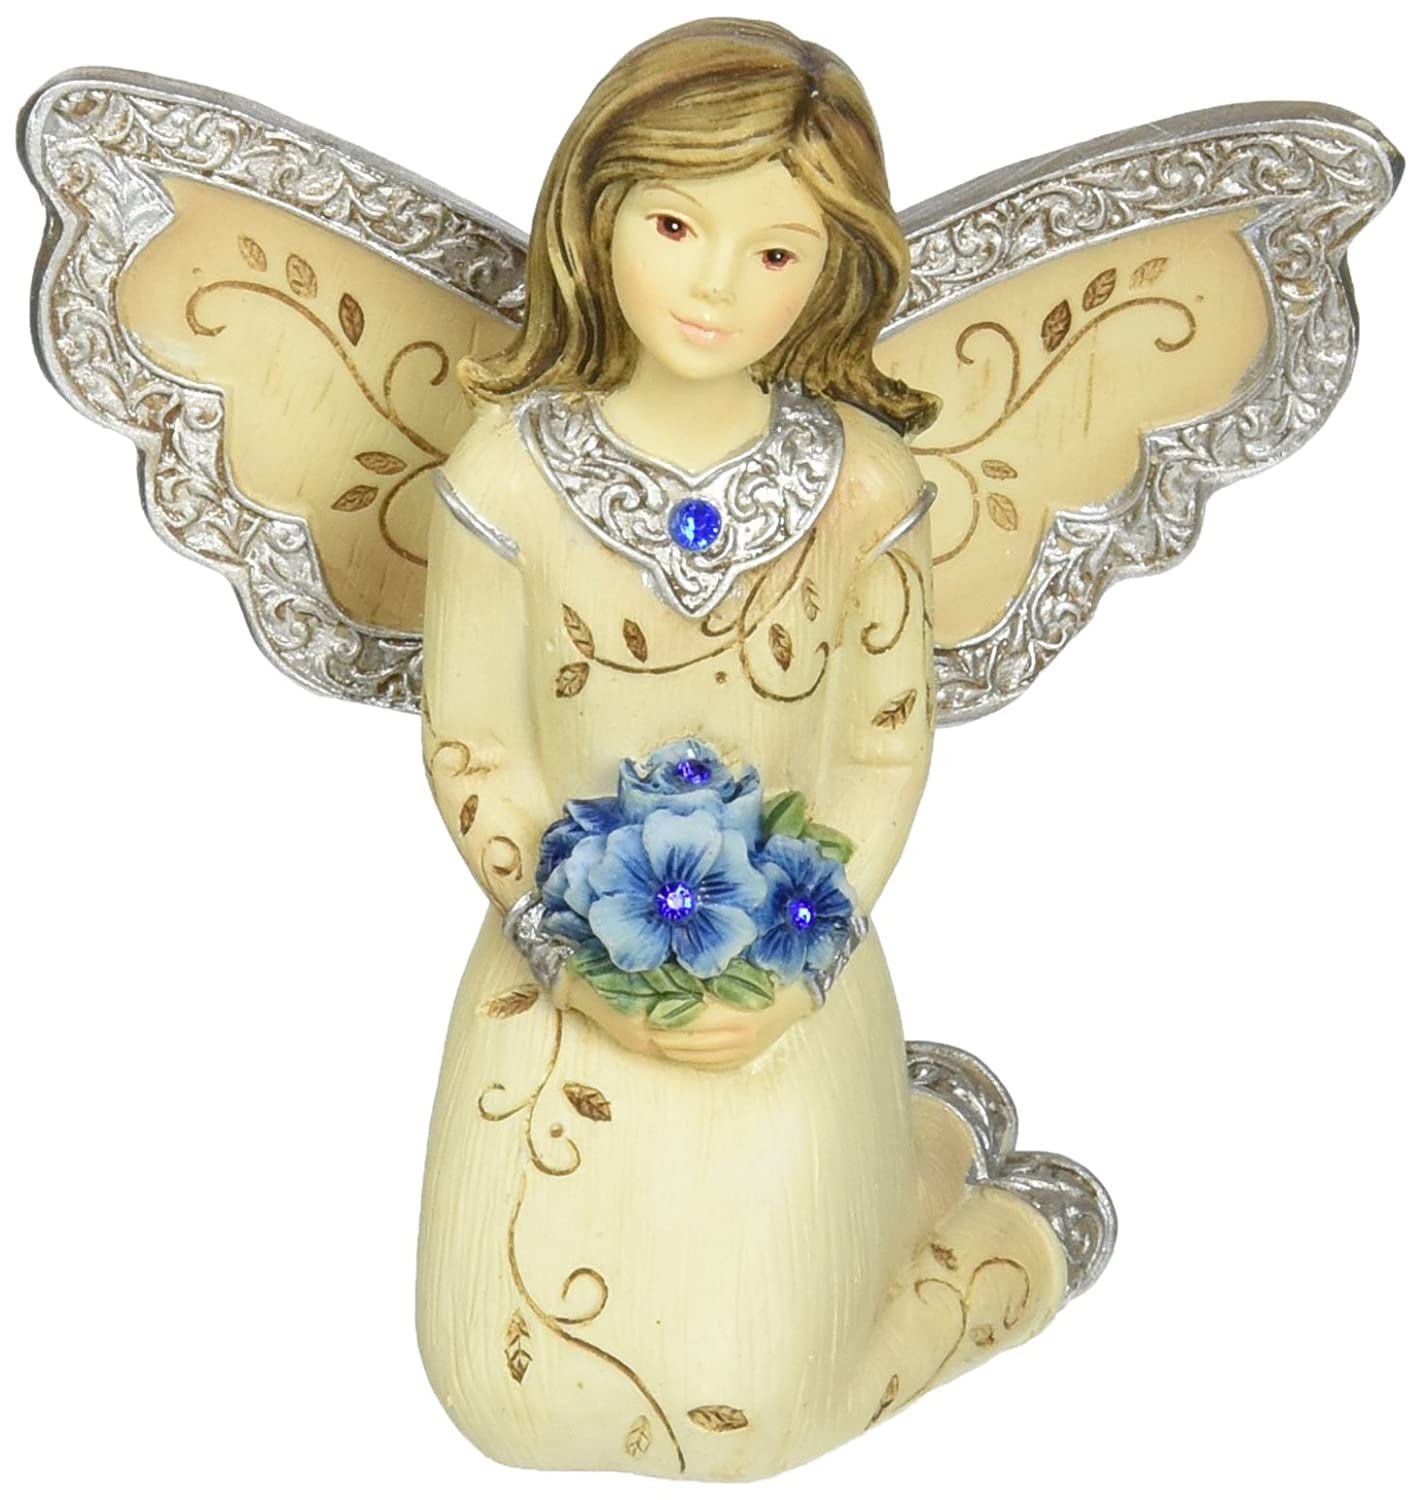 Elements September Monthly Angel Figurine, Includes Sapphire Birthstone, 3-Inch